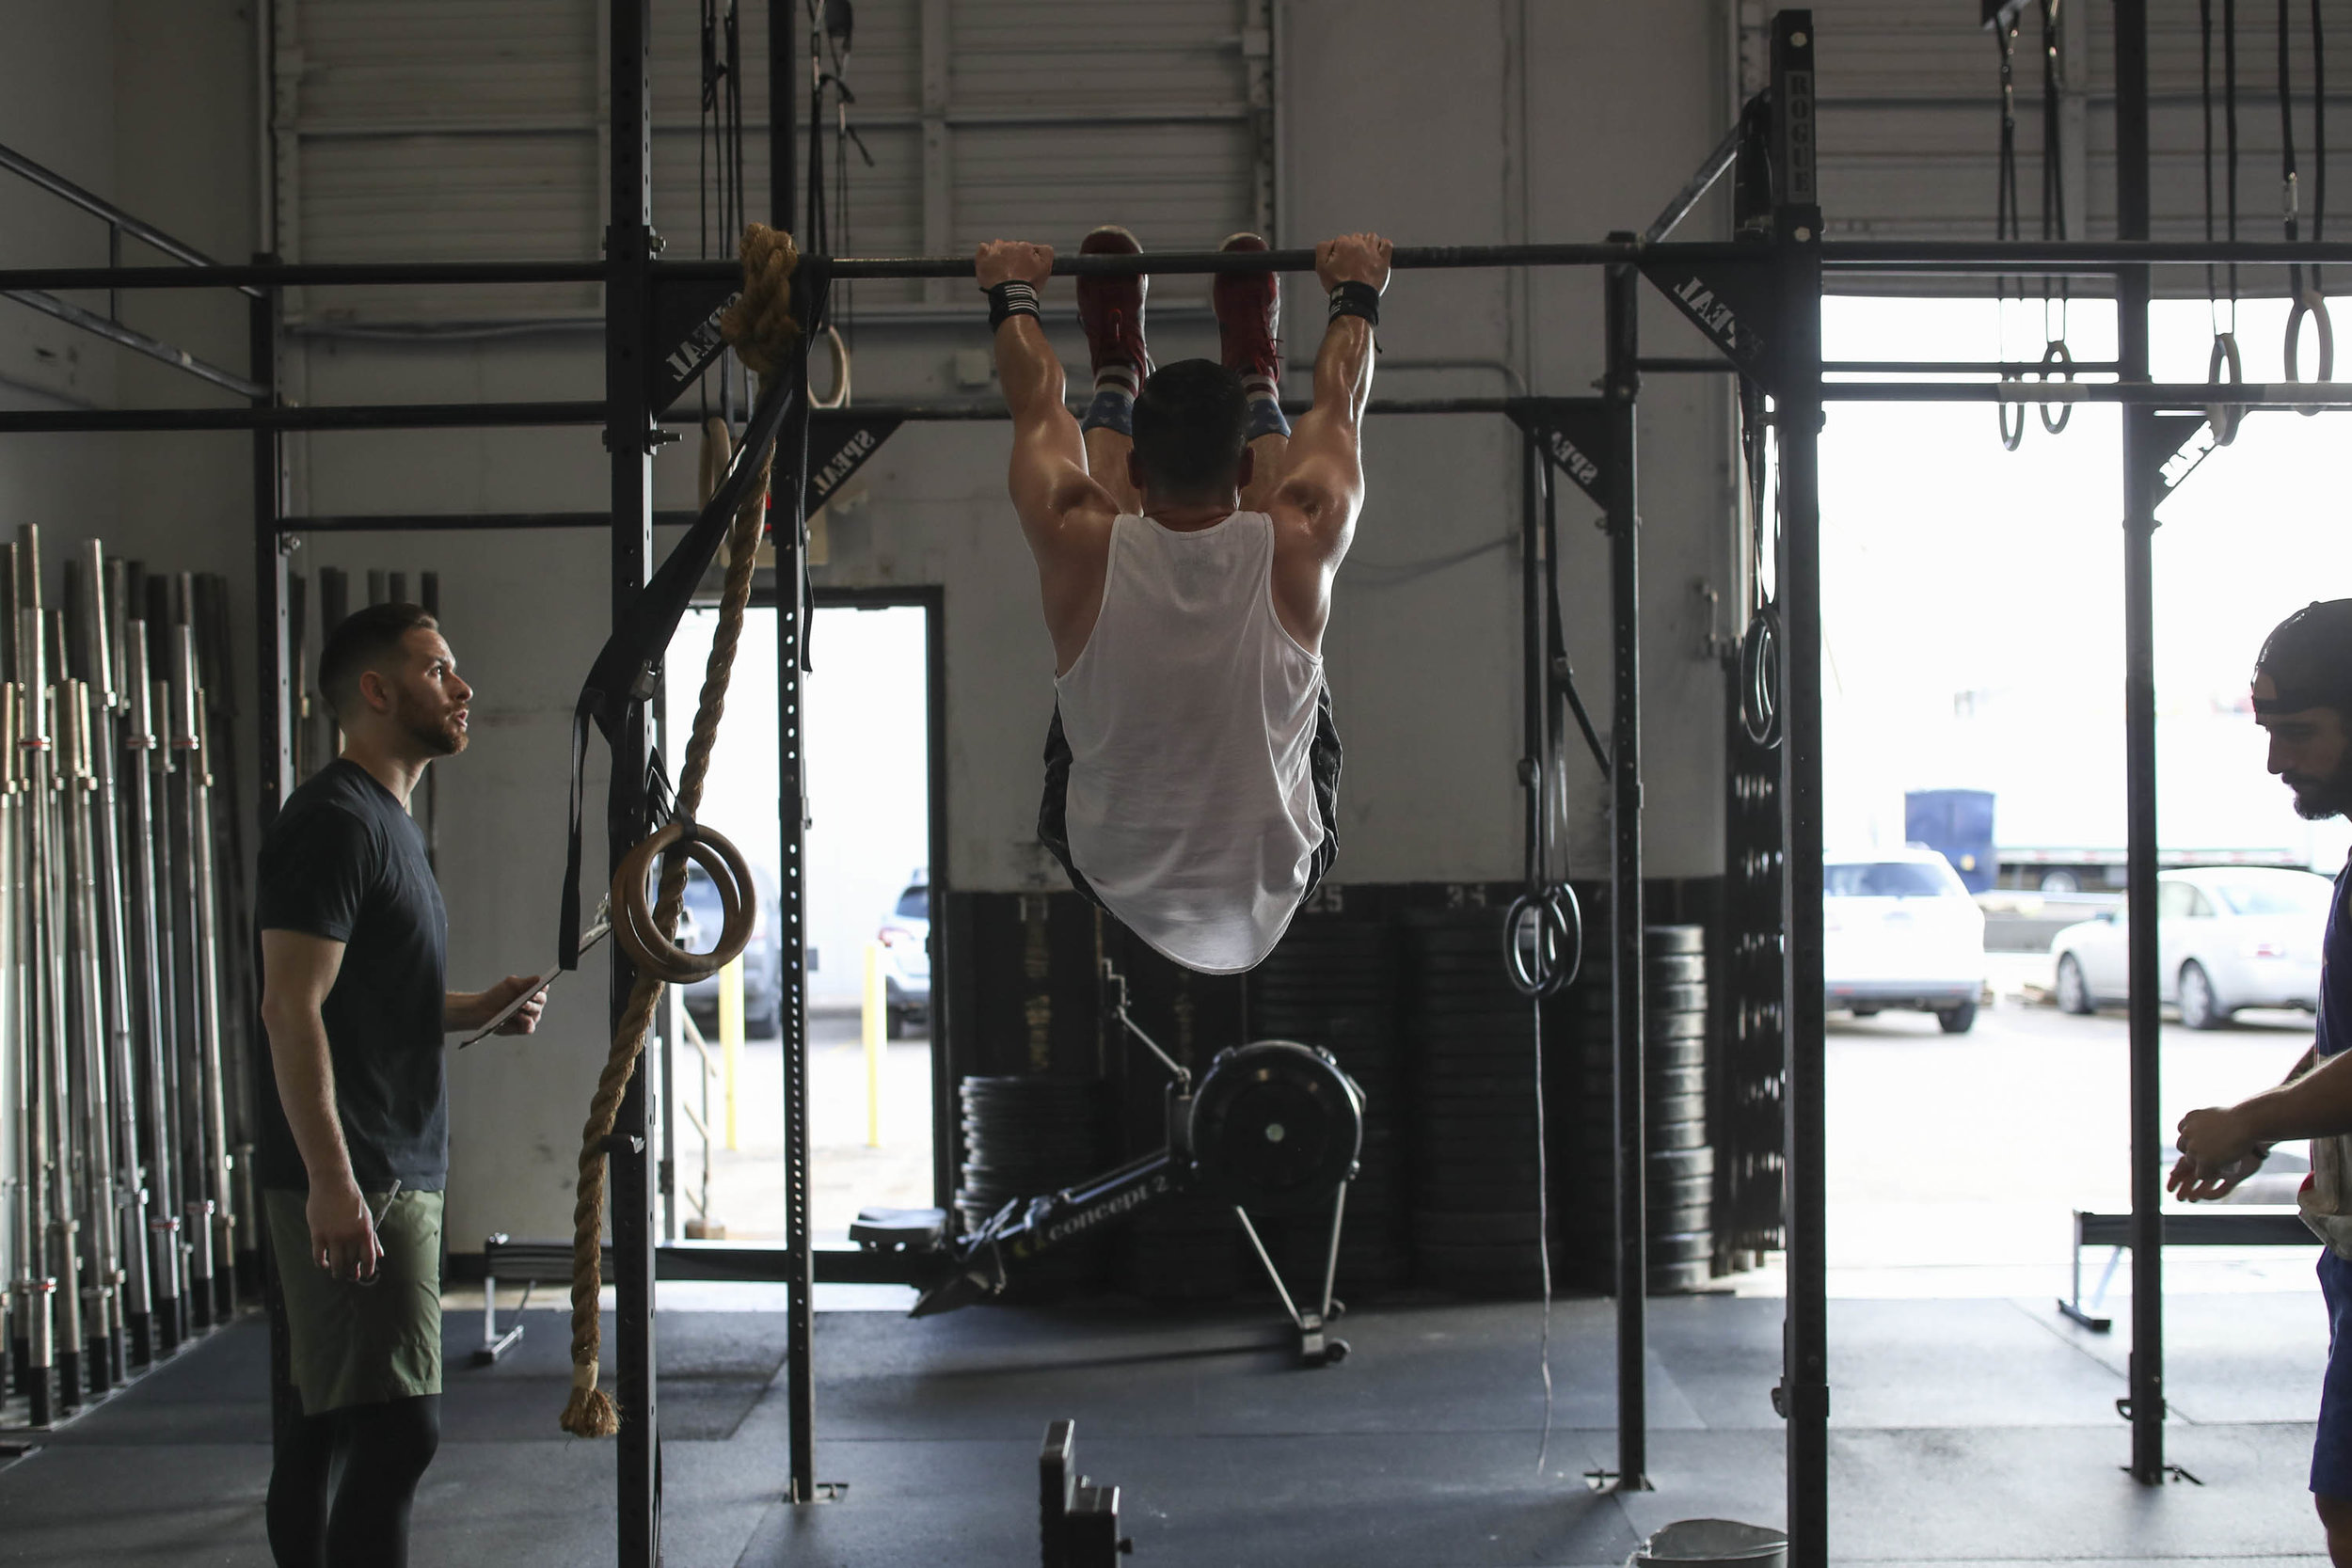 Ryan Kealler showing a great example of a Toes to Bar!